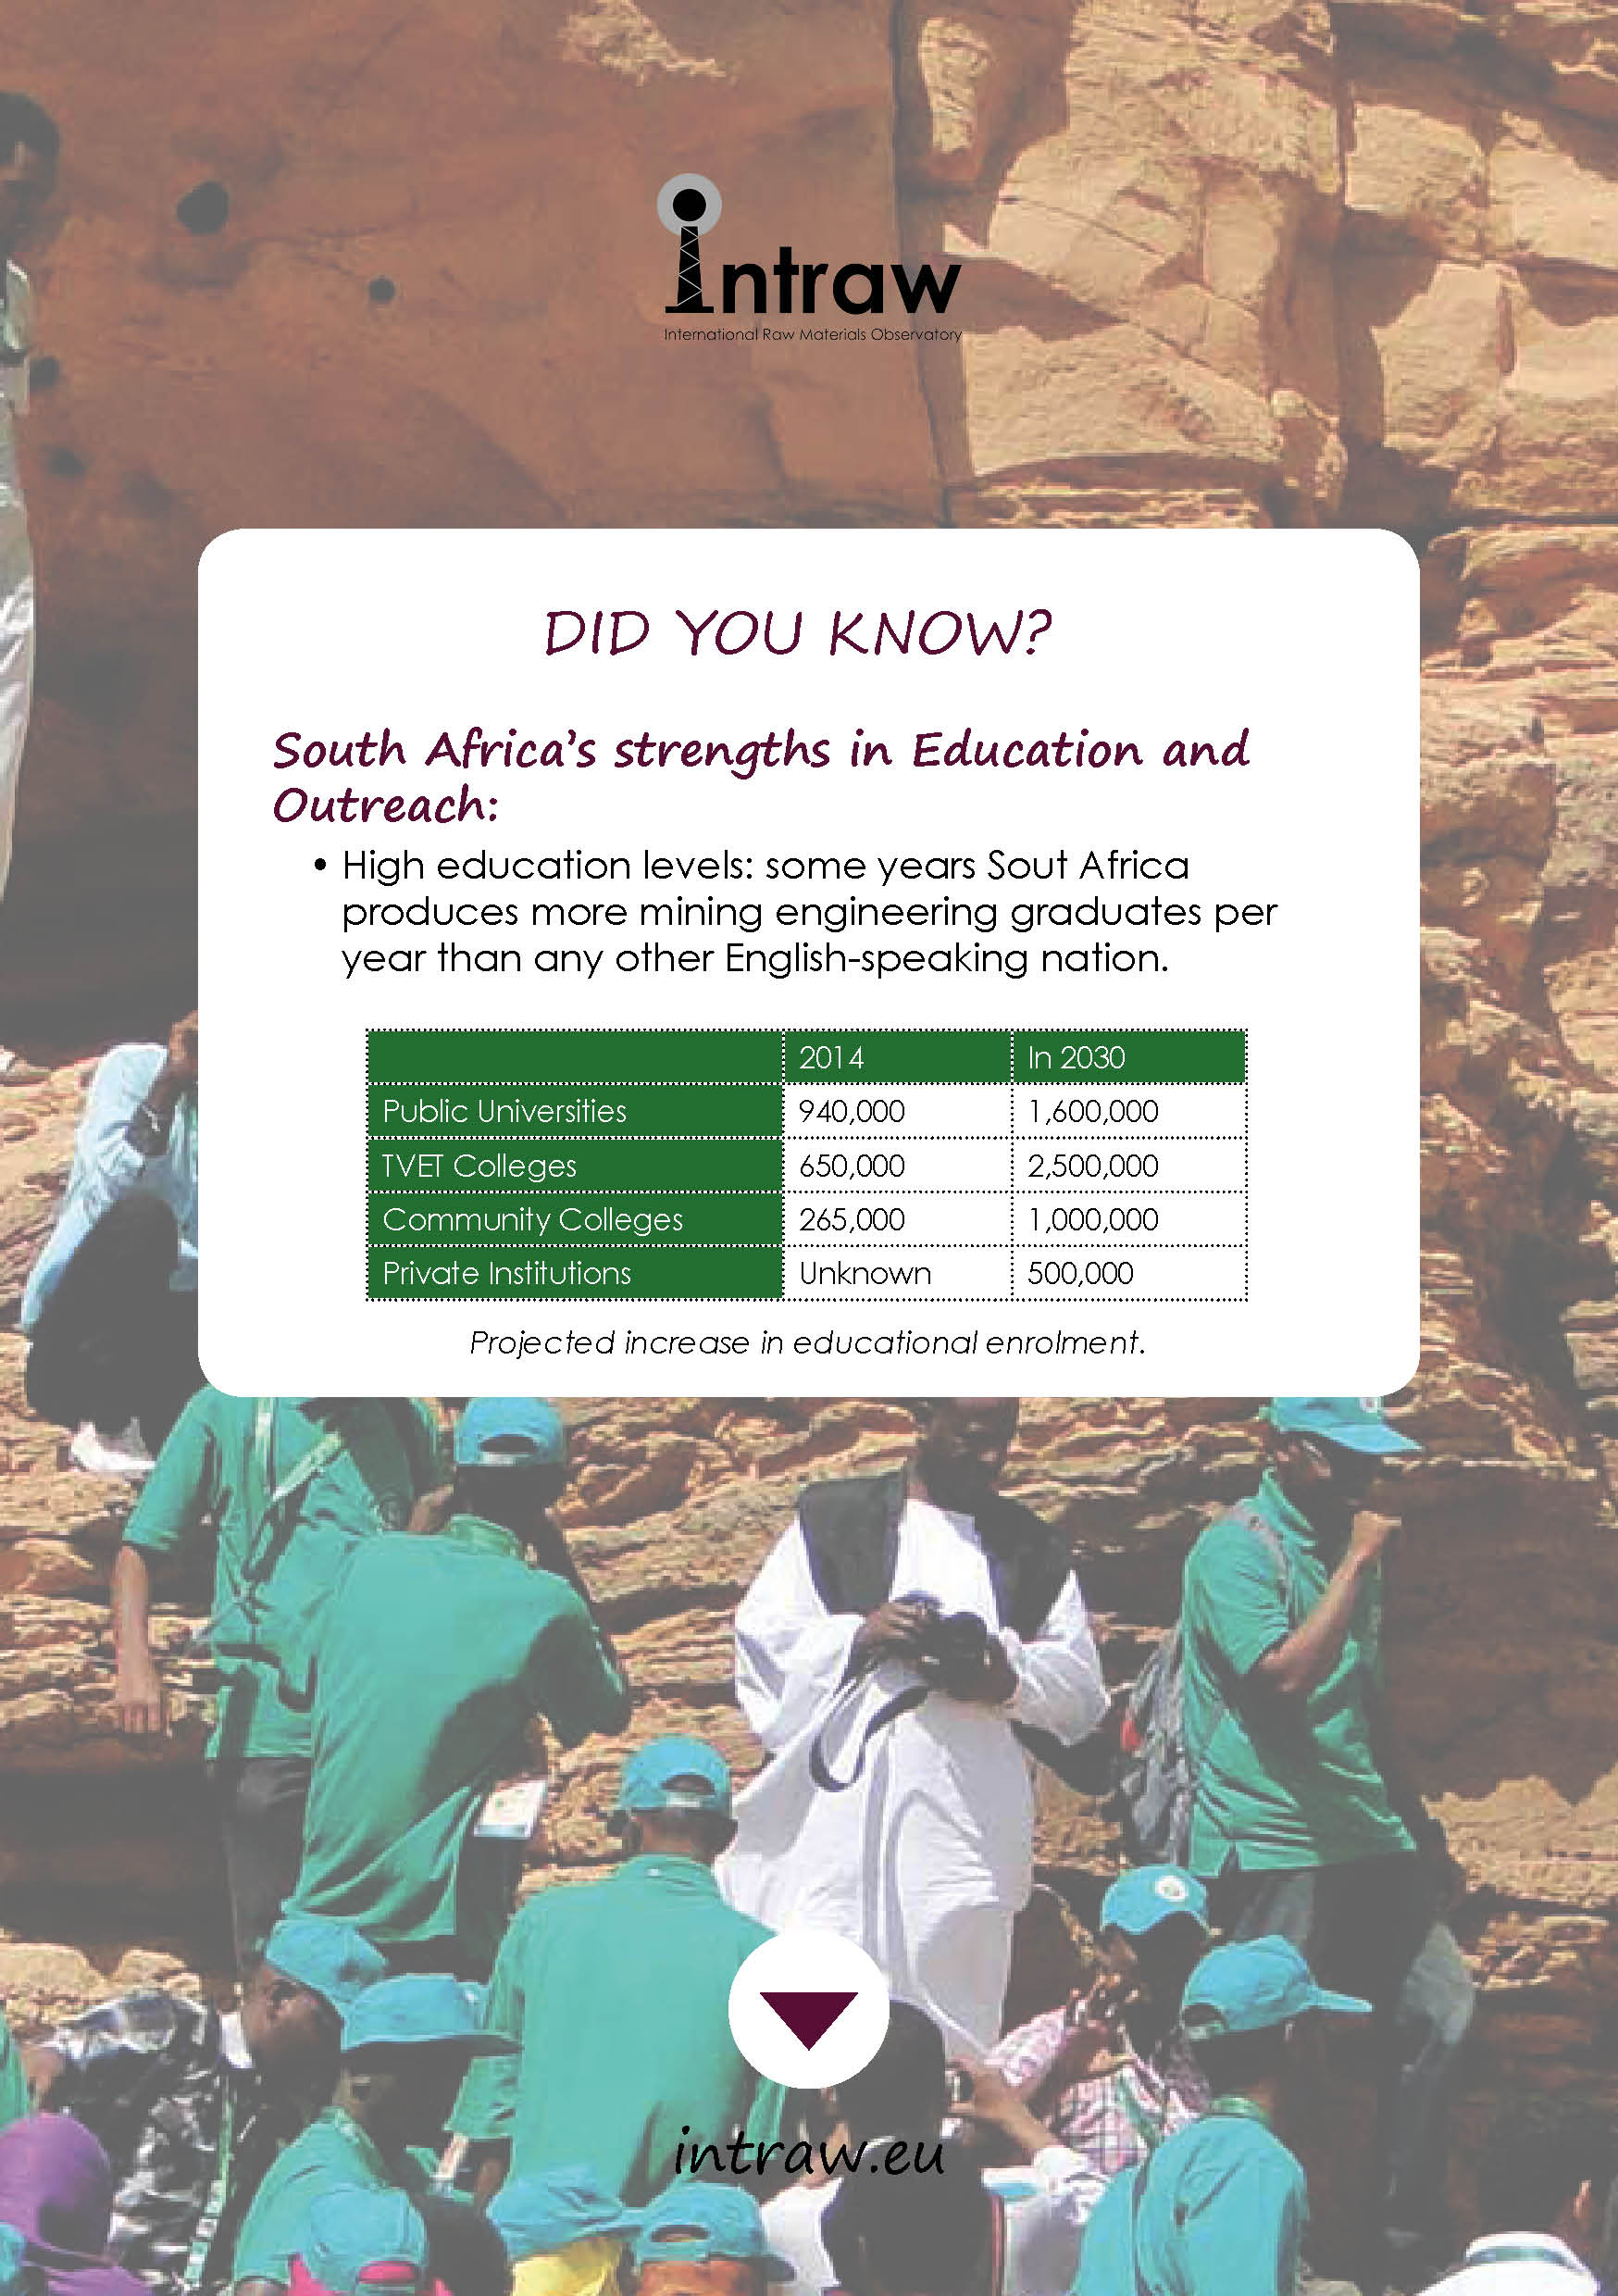 Check how South Africa is doing on #EducationAndOutreach, first with a look at its strengths